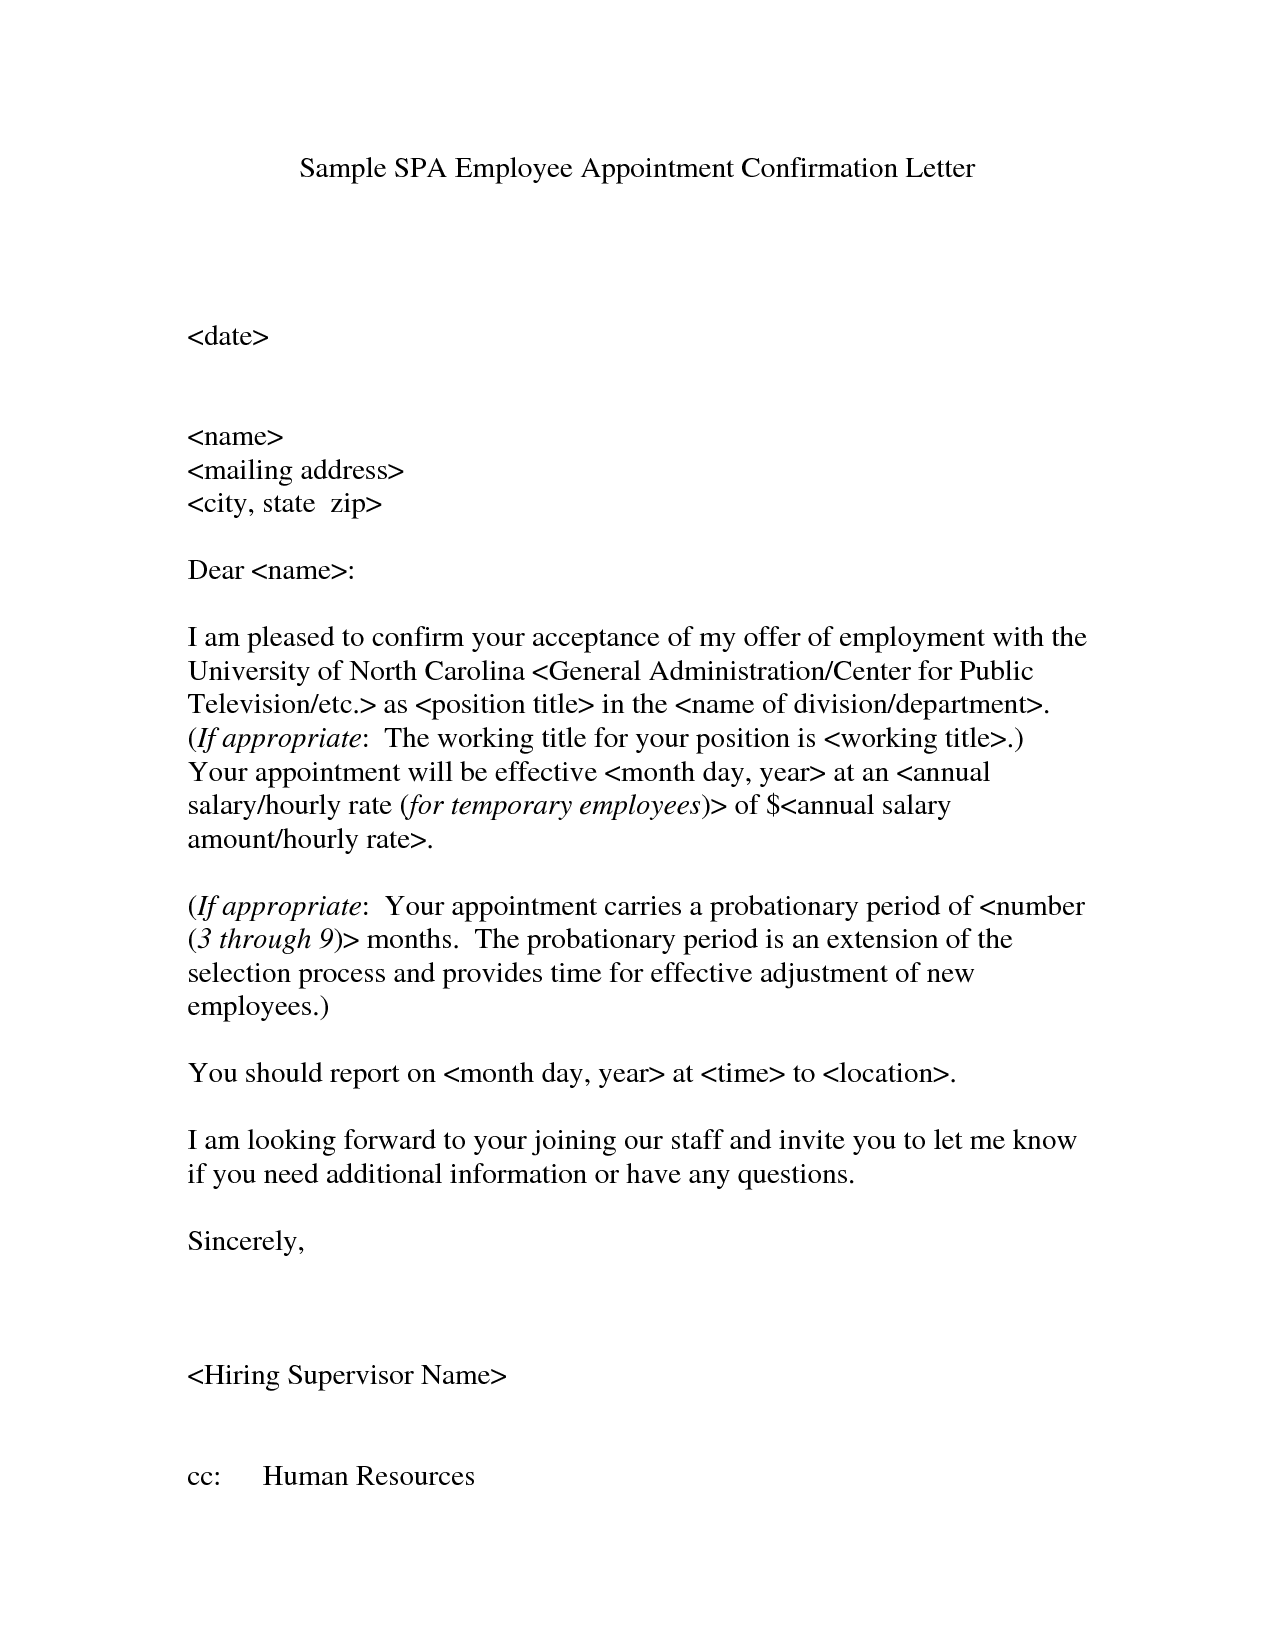 Appointment confirmation letter confirmation of for Job salon distribution